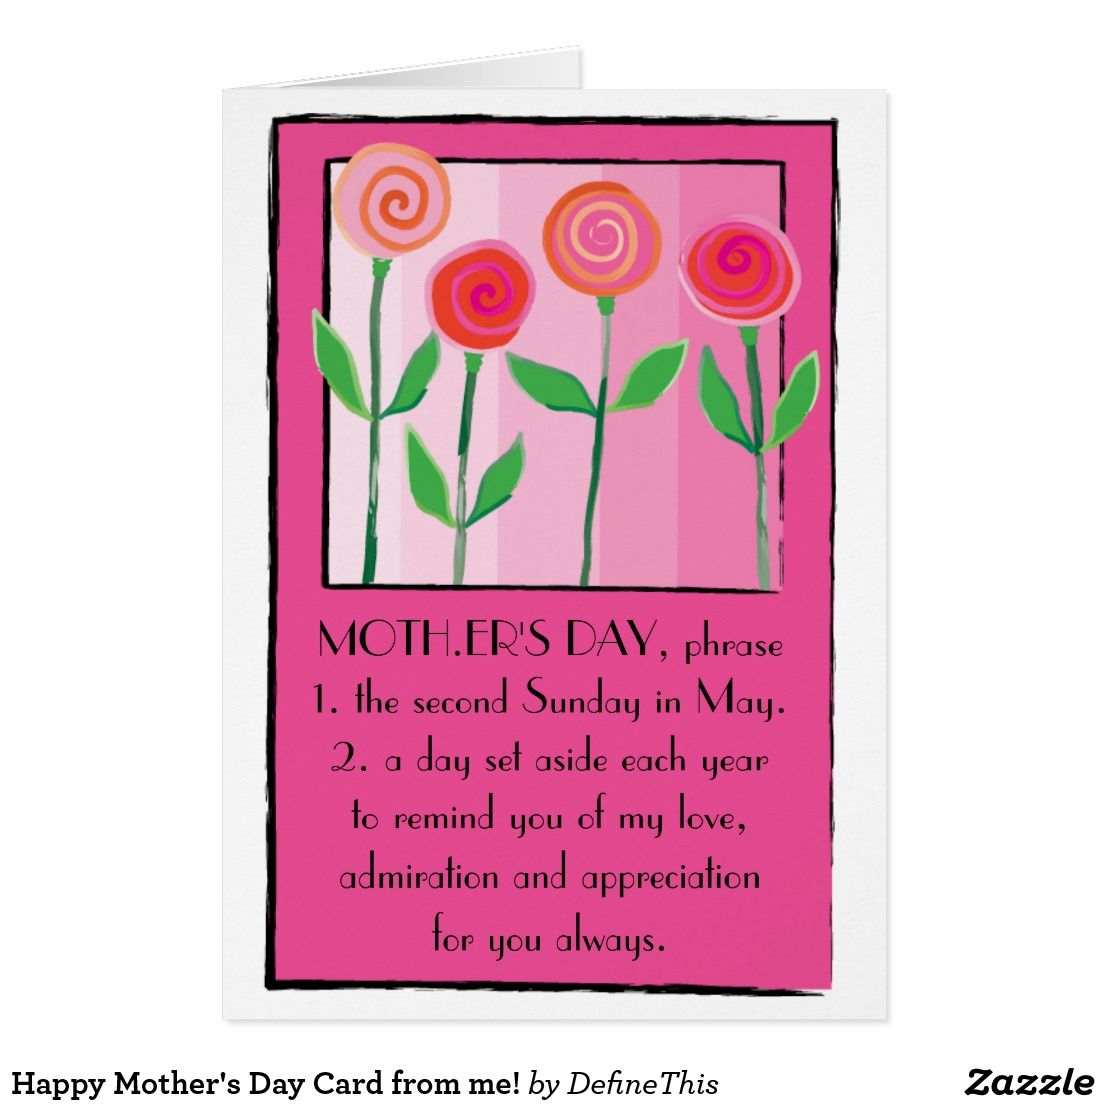 Happy Mother's Day Card from me!